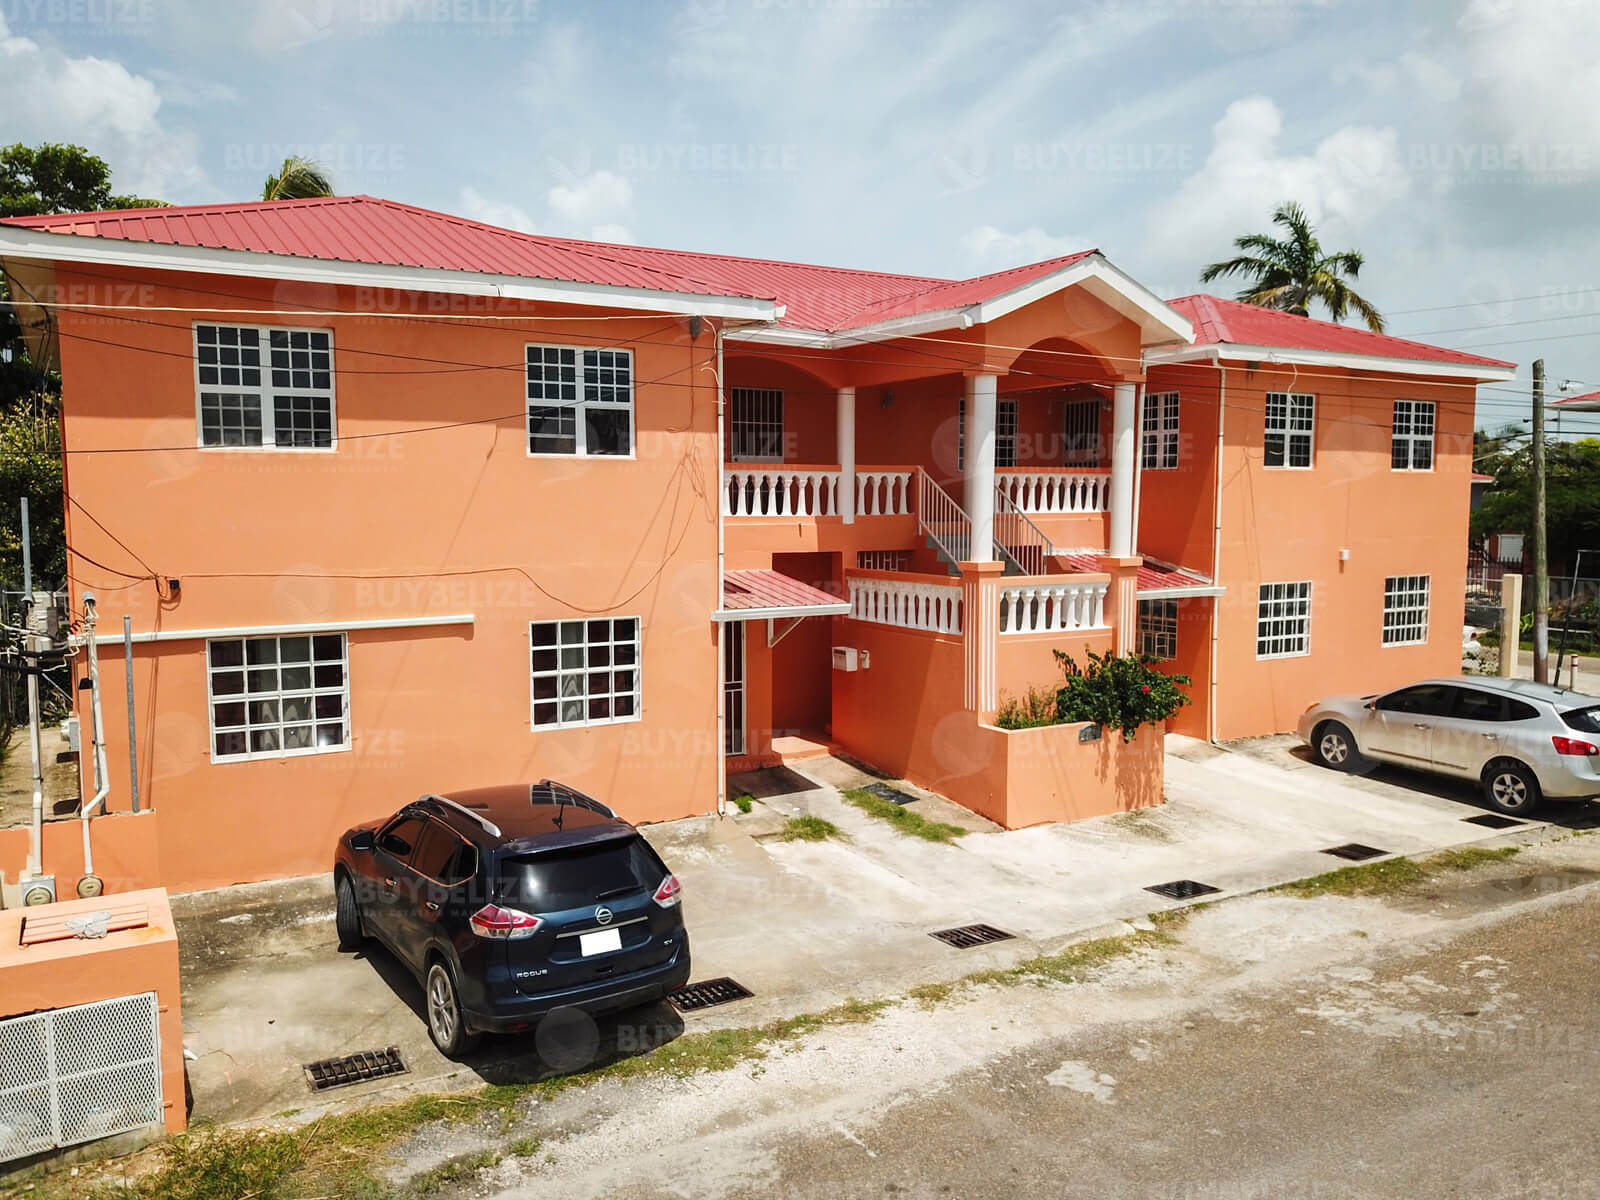 Office Space for Rent in Belize City